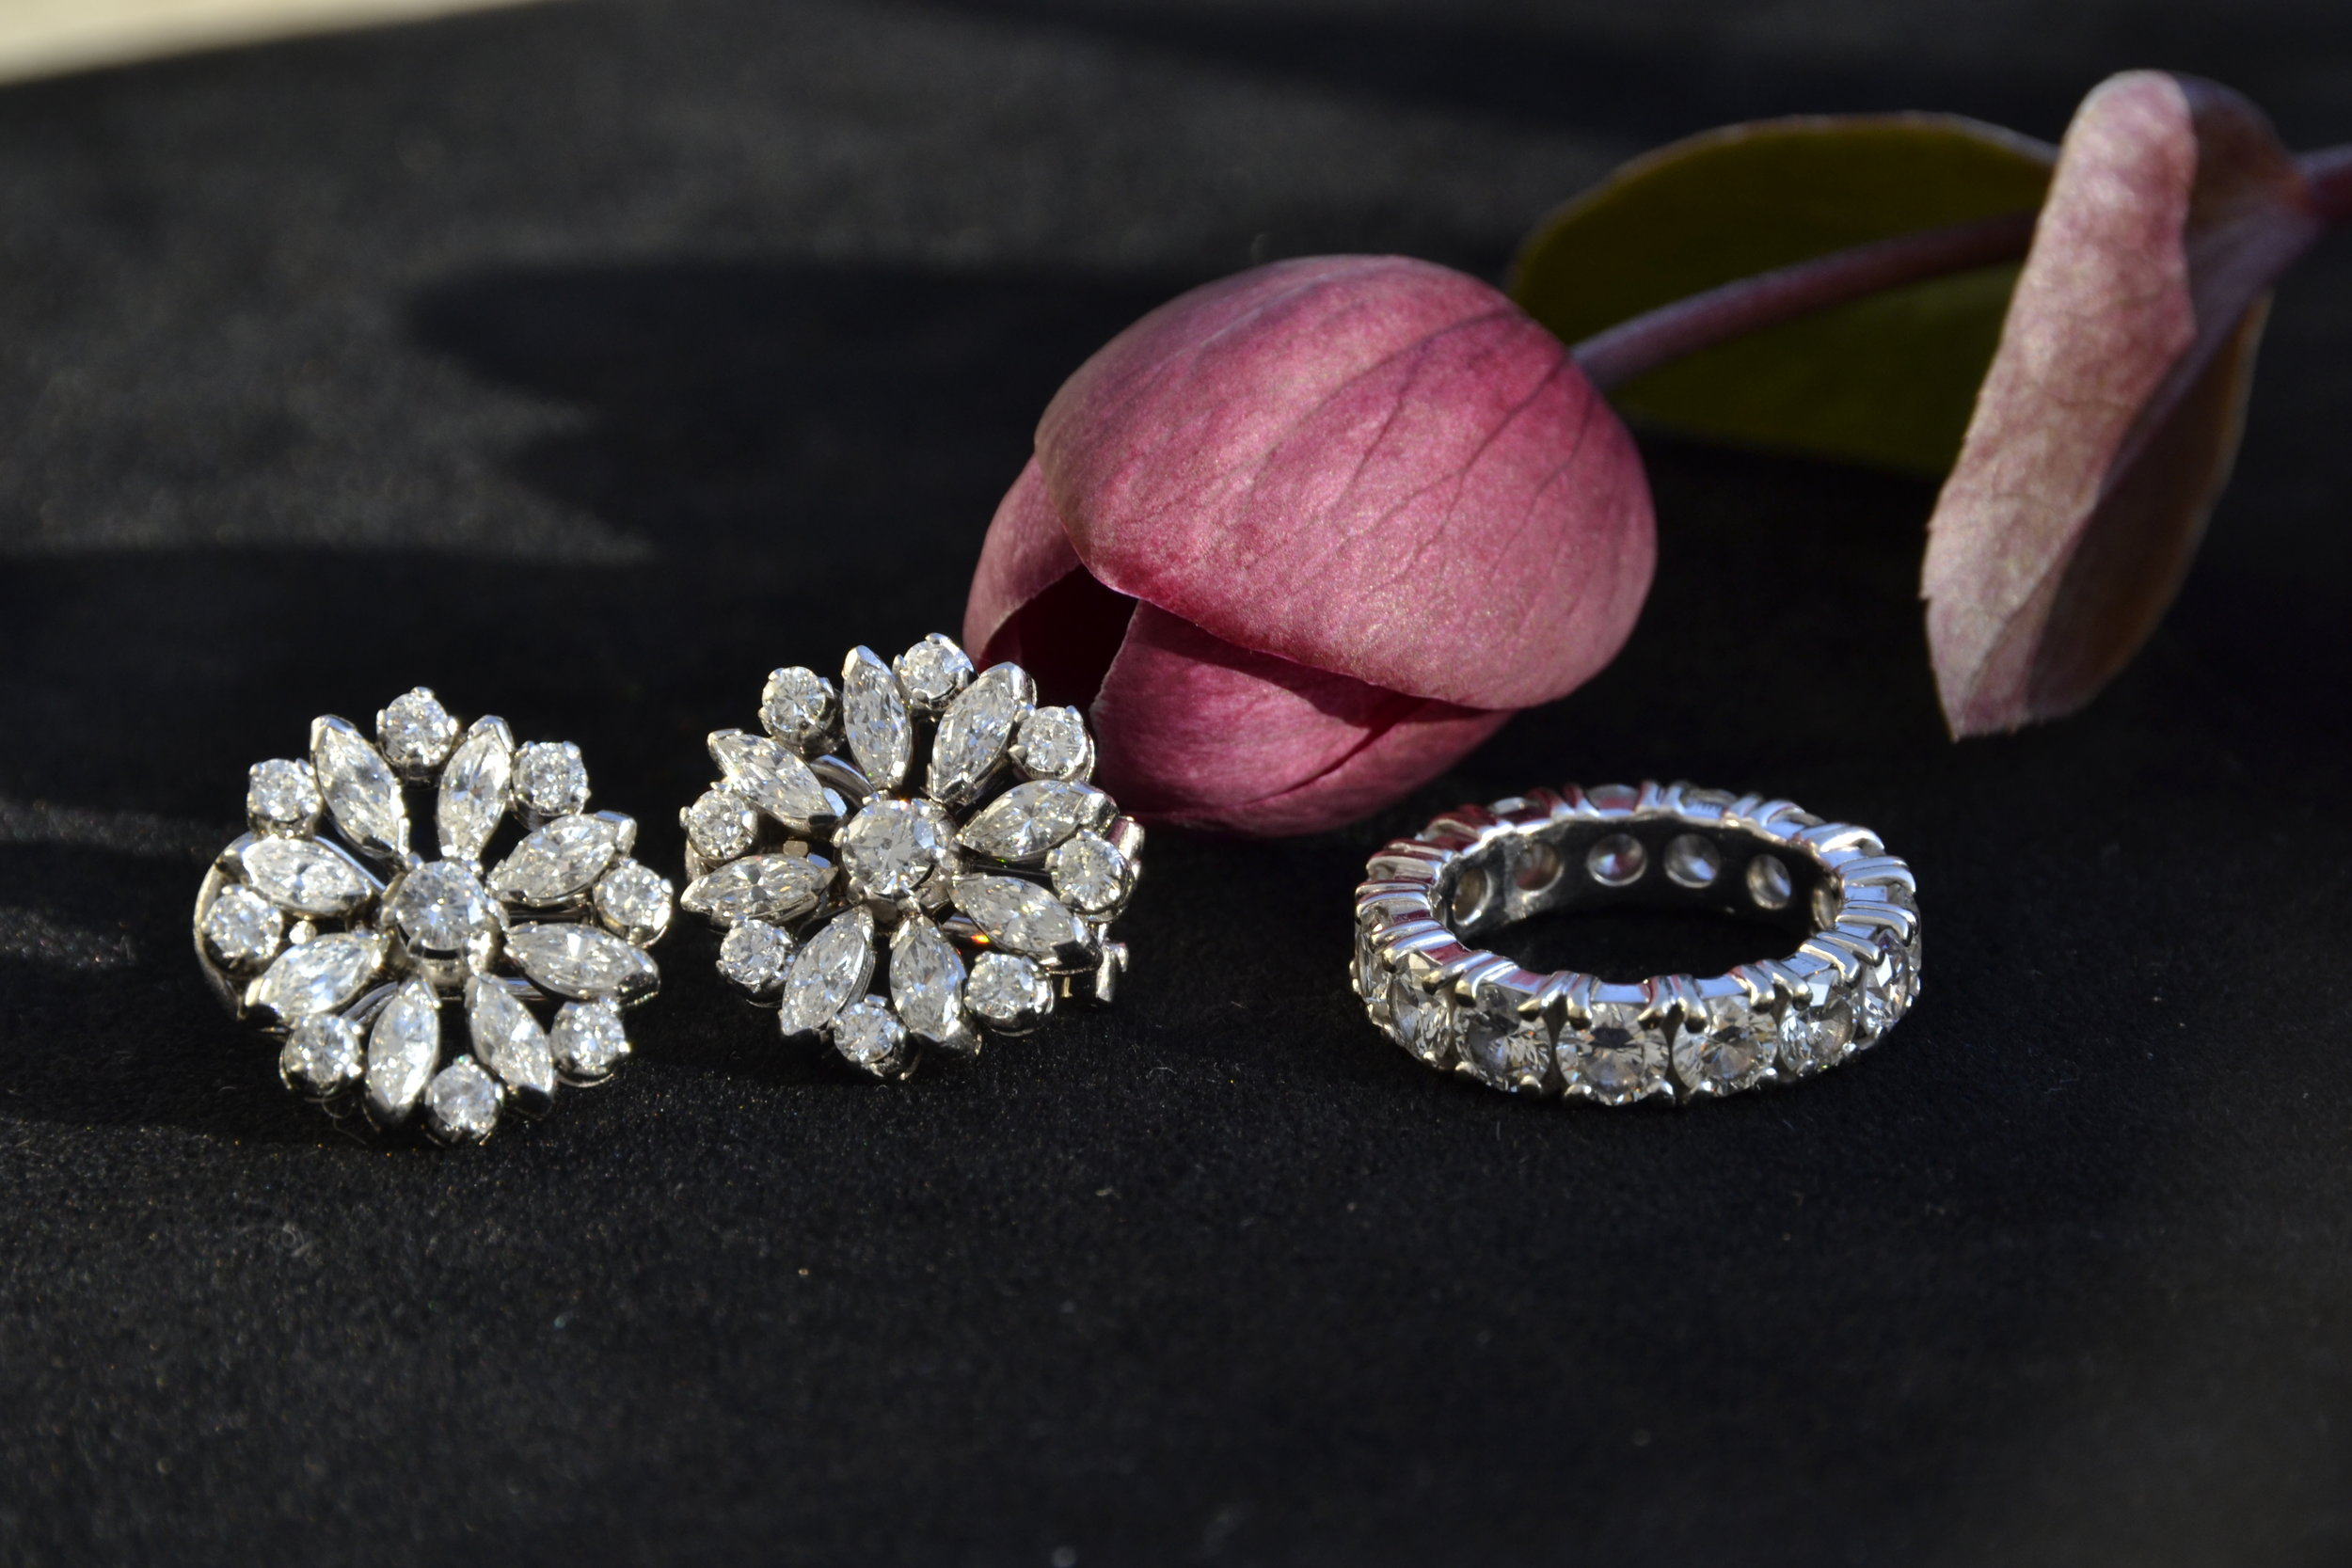 Antique diamond earrings, and eternity ring